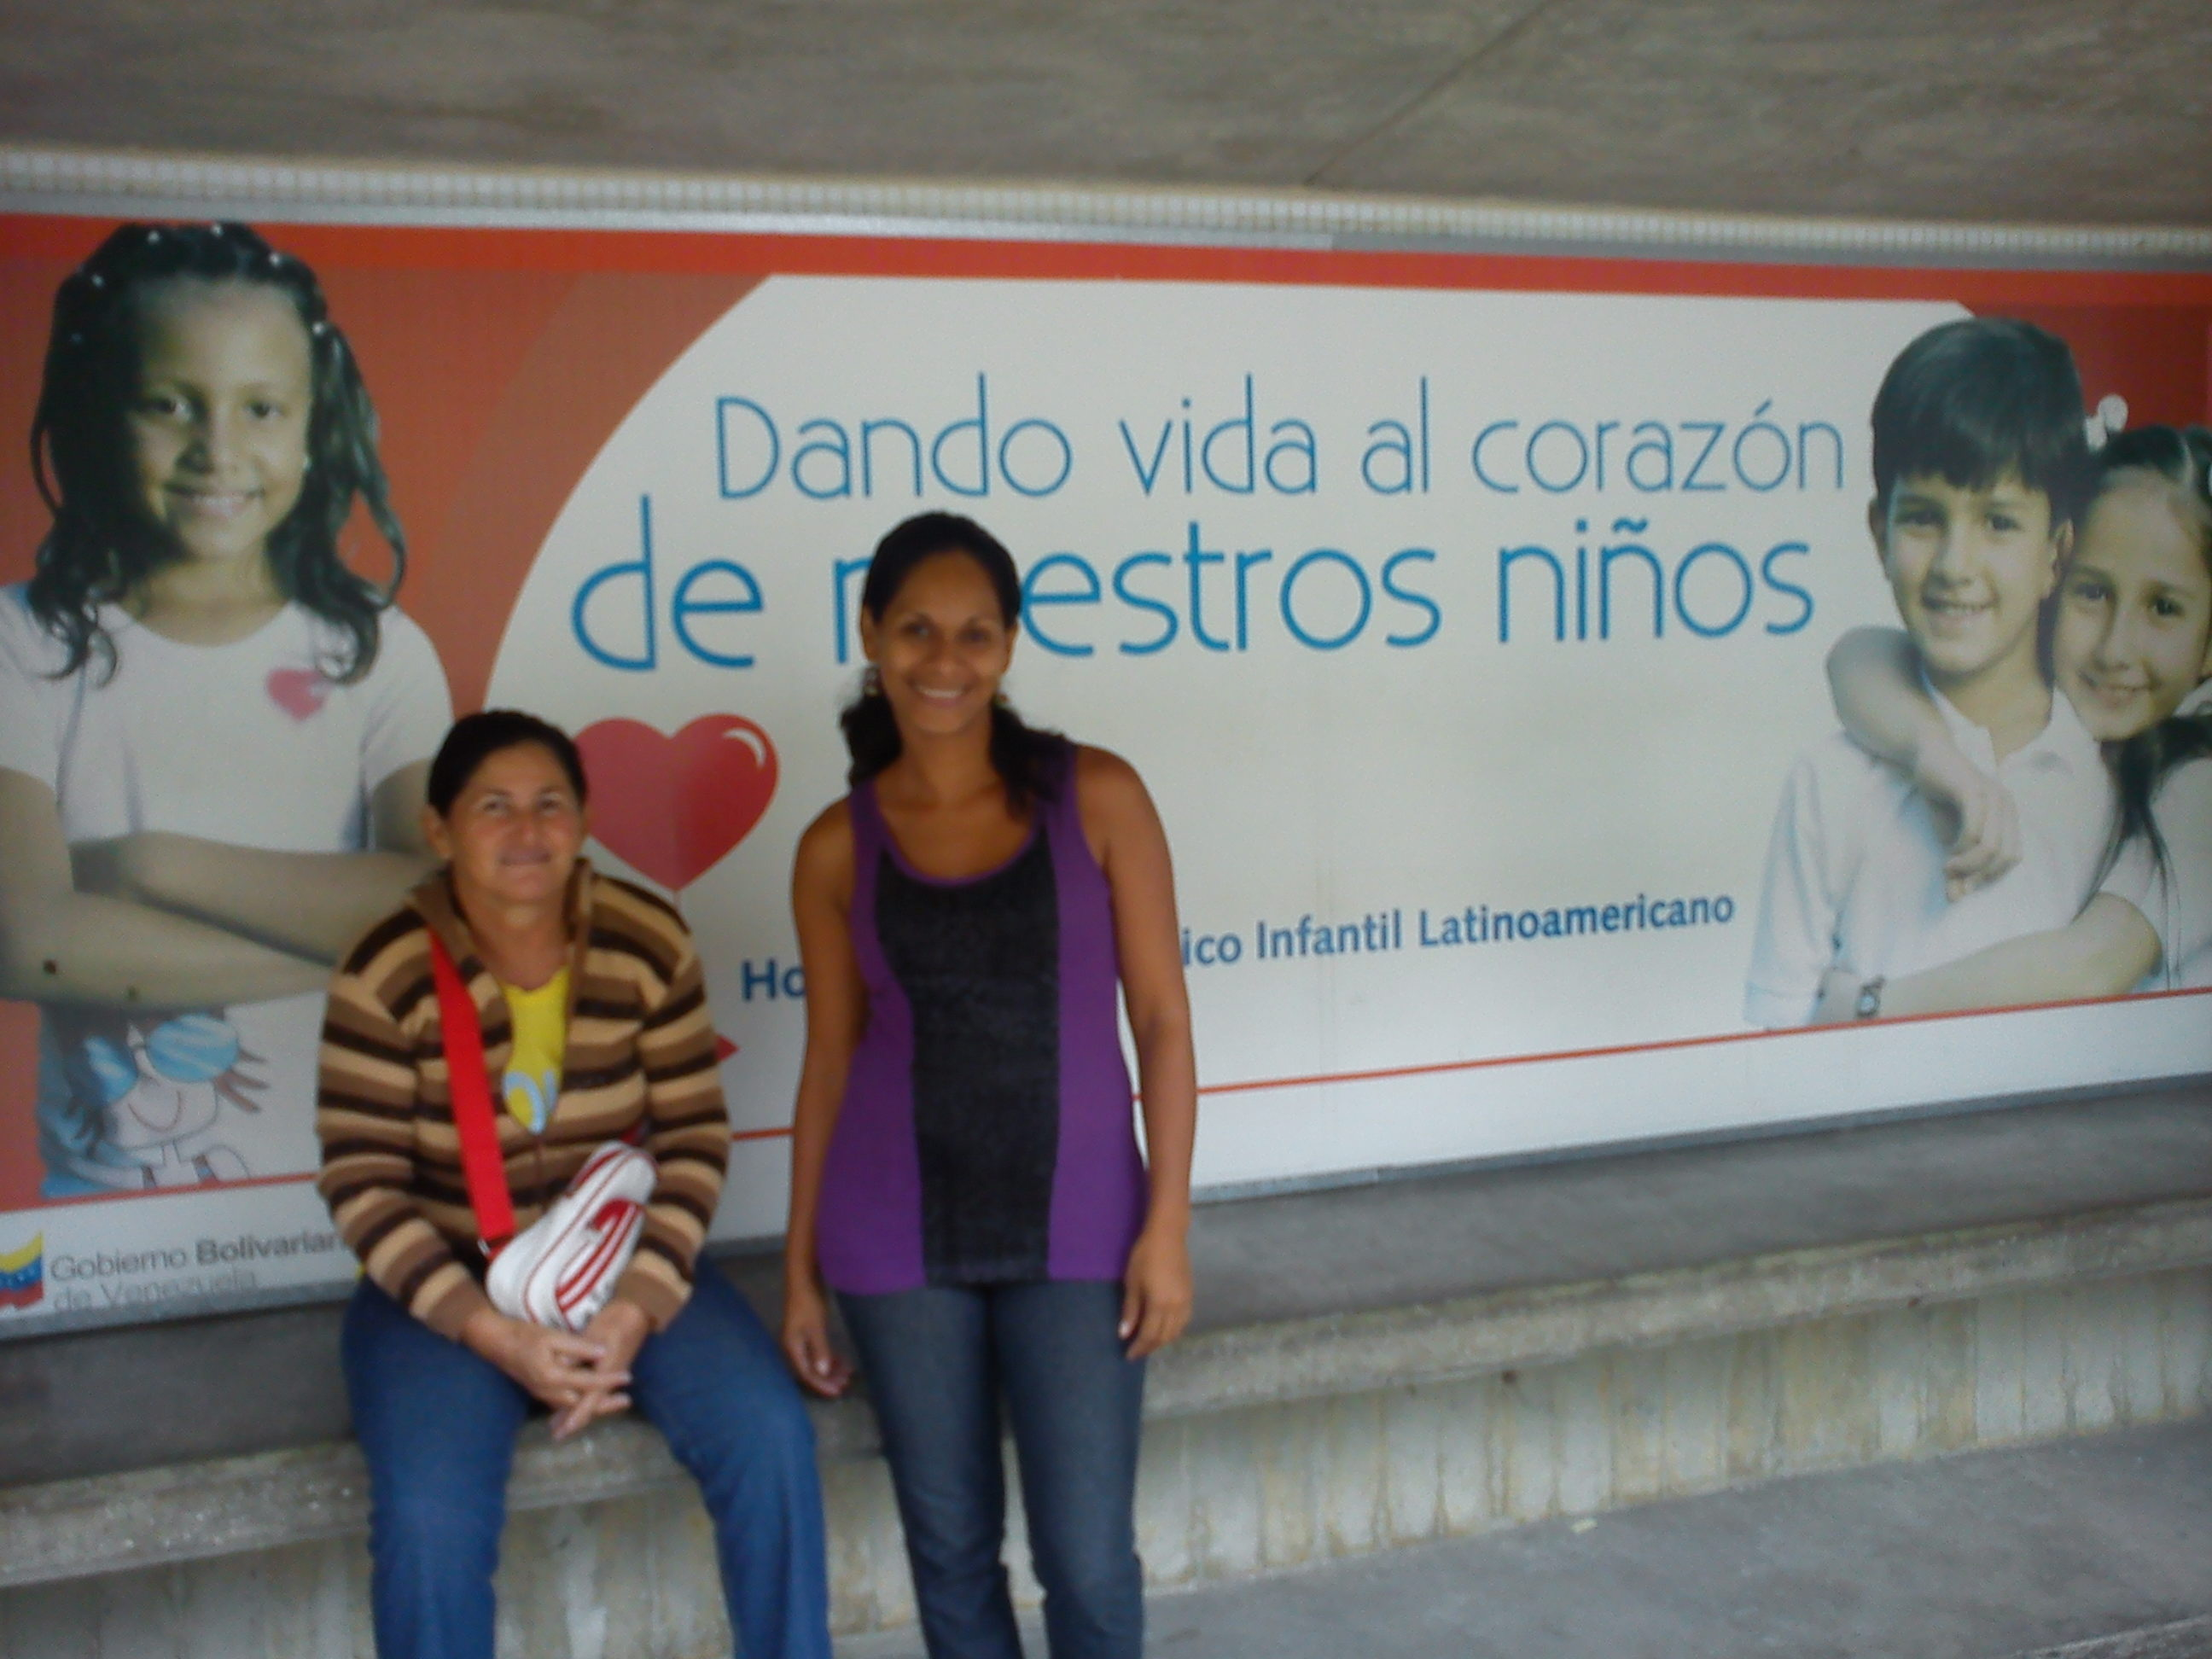 Ana Gomez, a mother whose daughter has undergone open heart surgery in the hospital